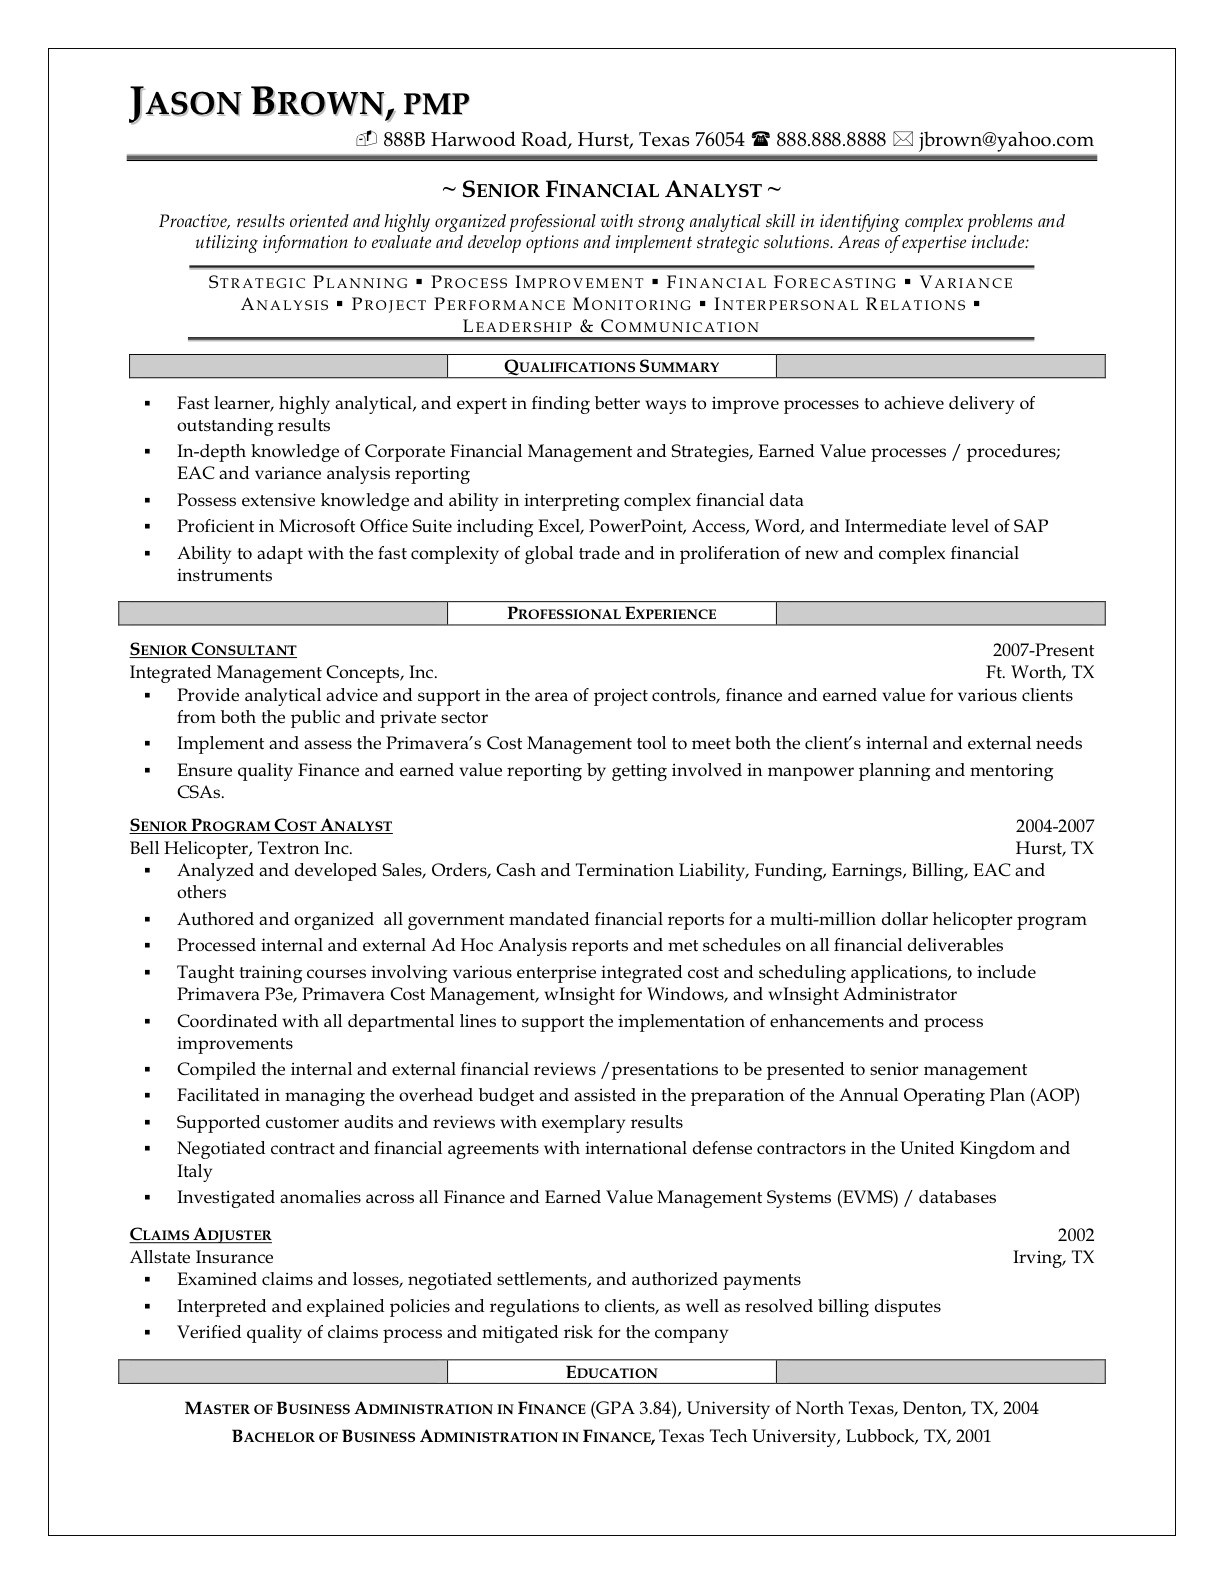 army acap resume builder army acap resume builder army acap resume builder